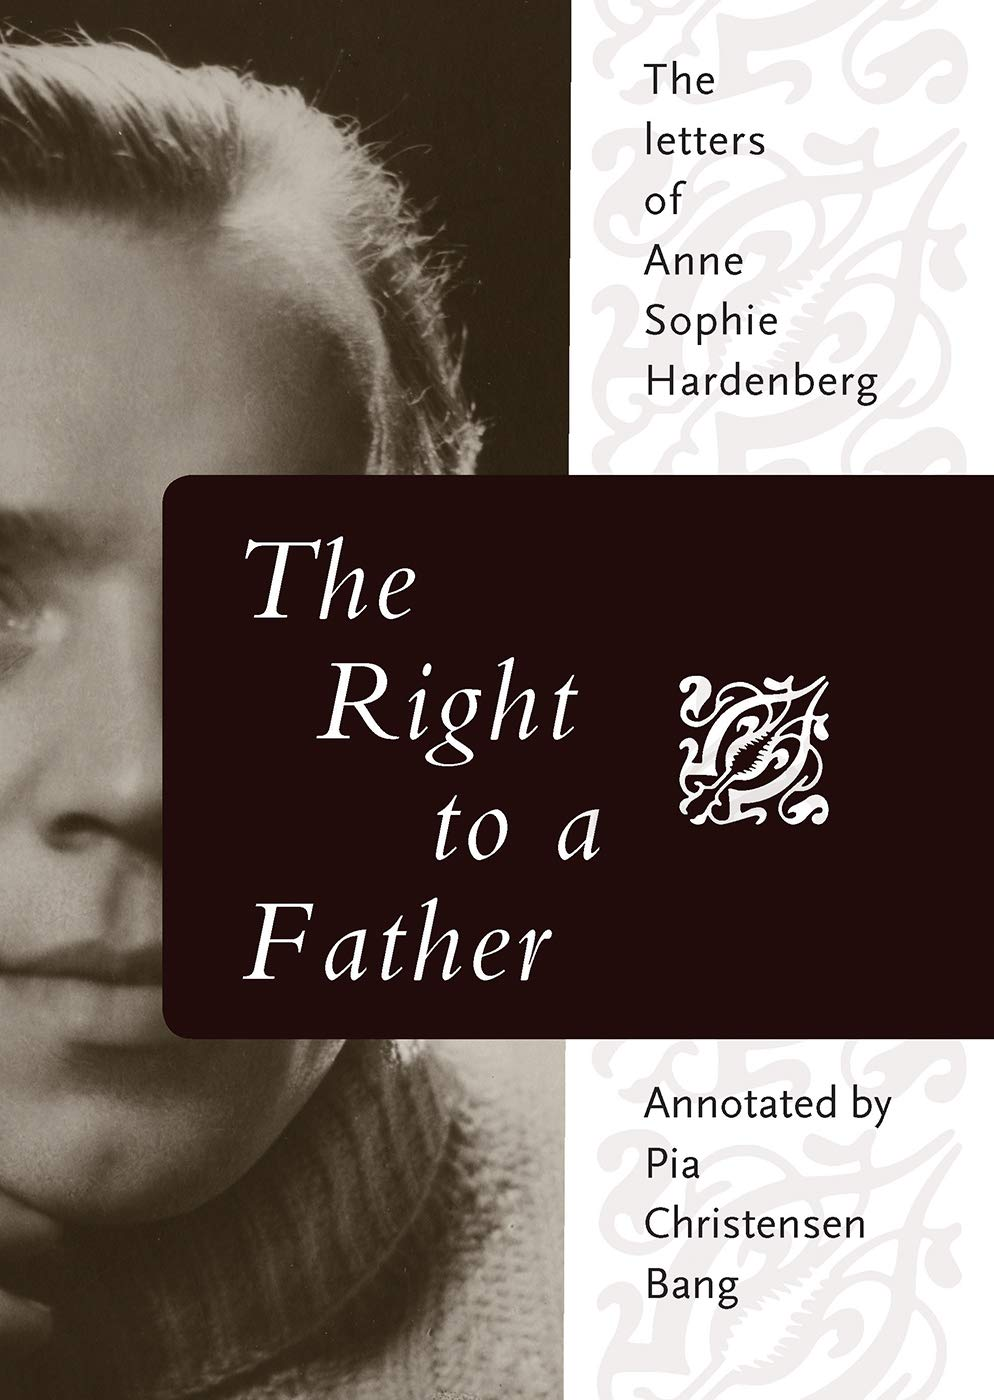 The Right to a Father